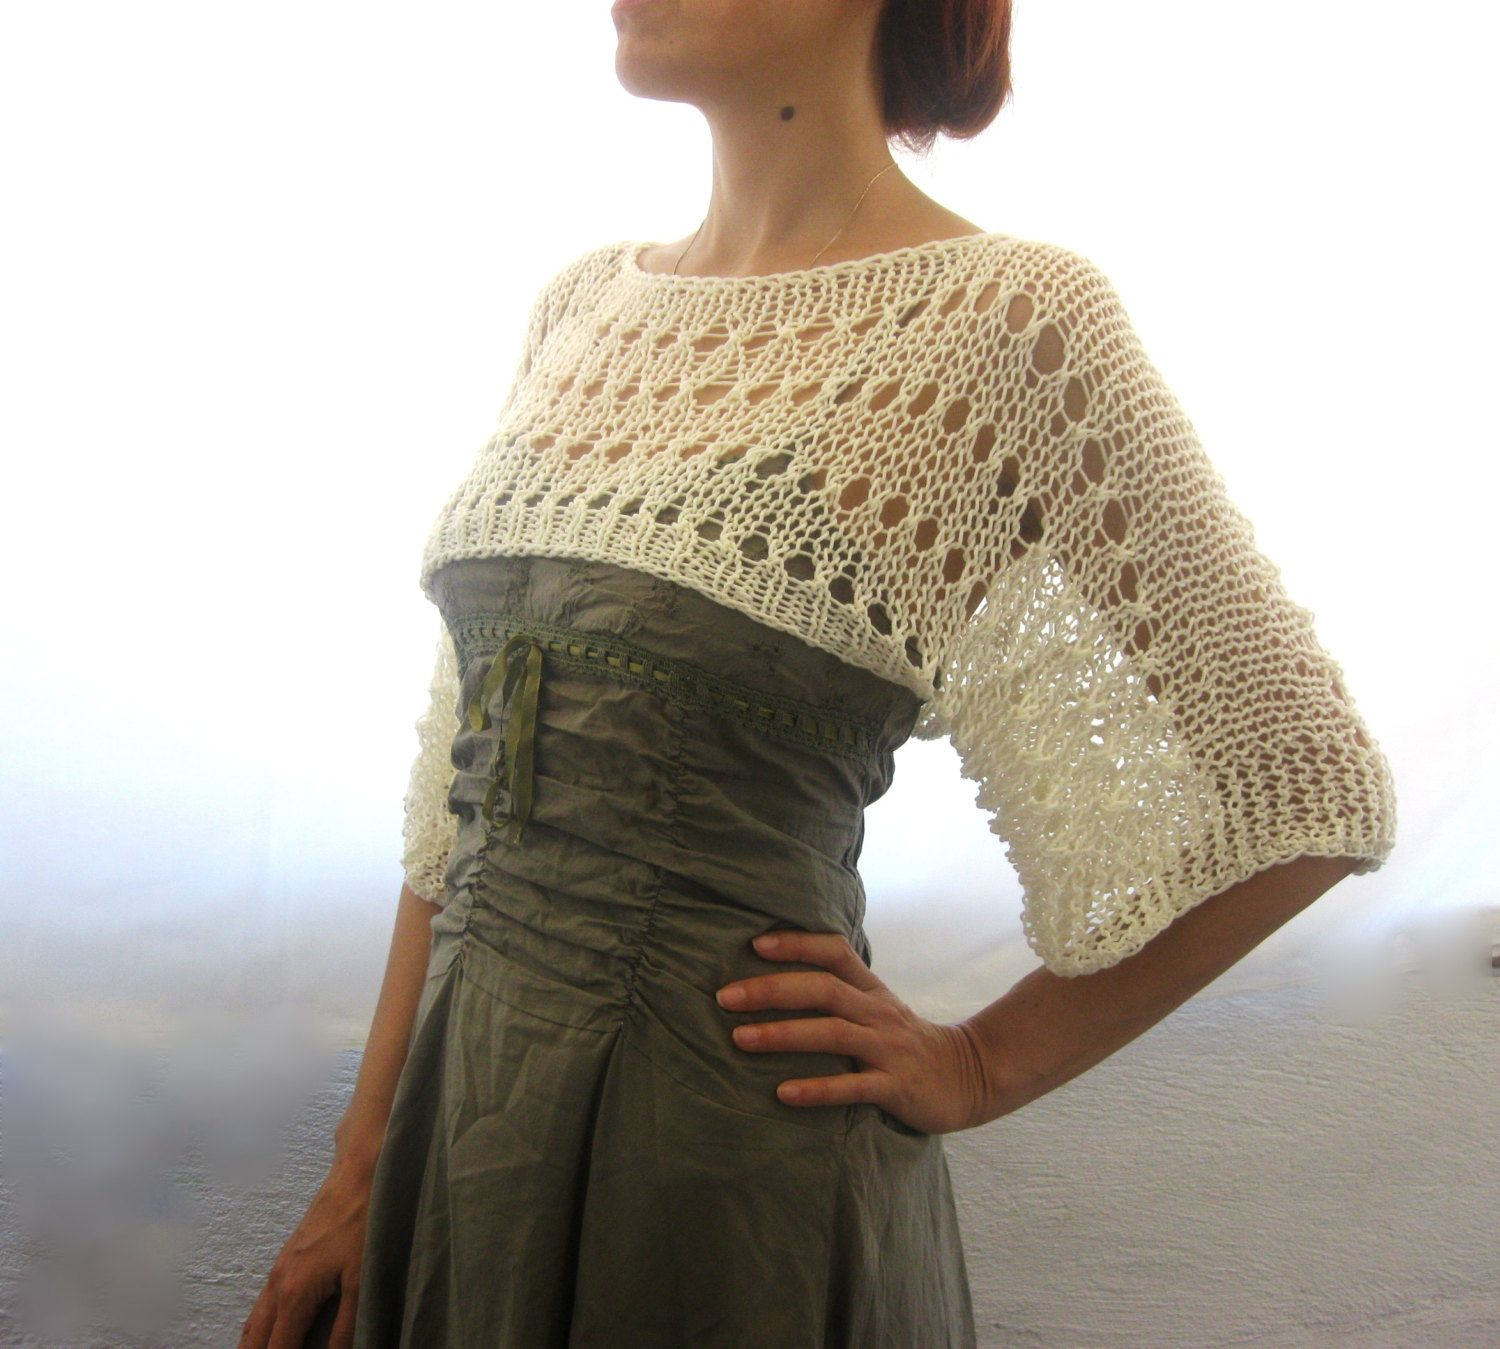 Cotton Summer Cropped Sweater Shrug, hand knitted, ecofriendly ...